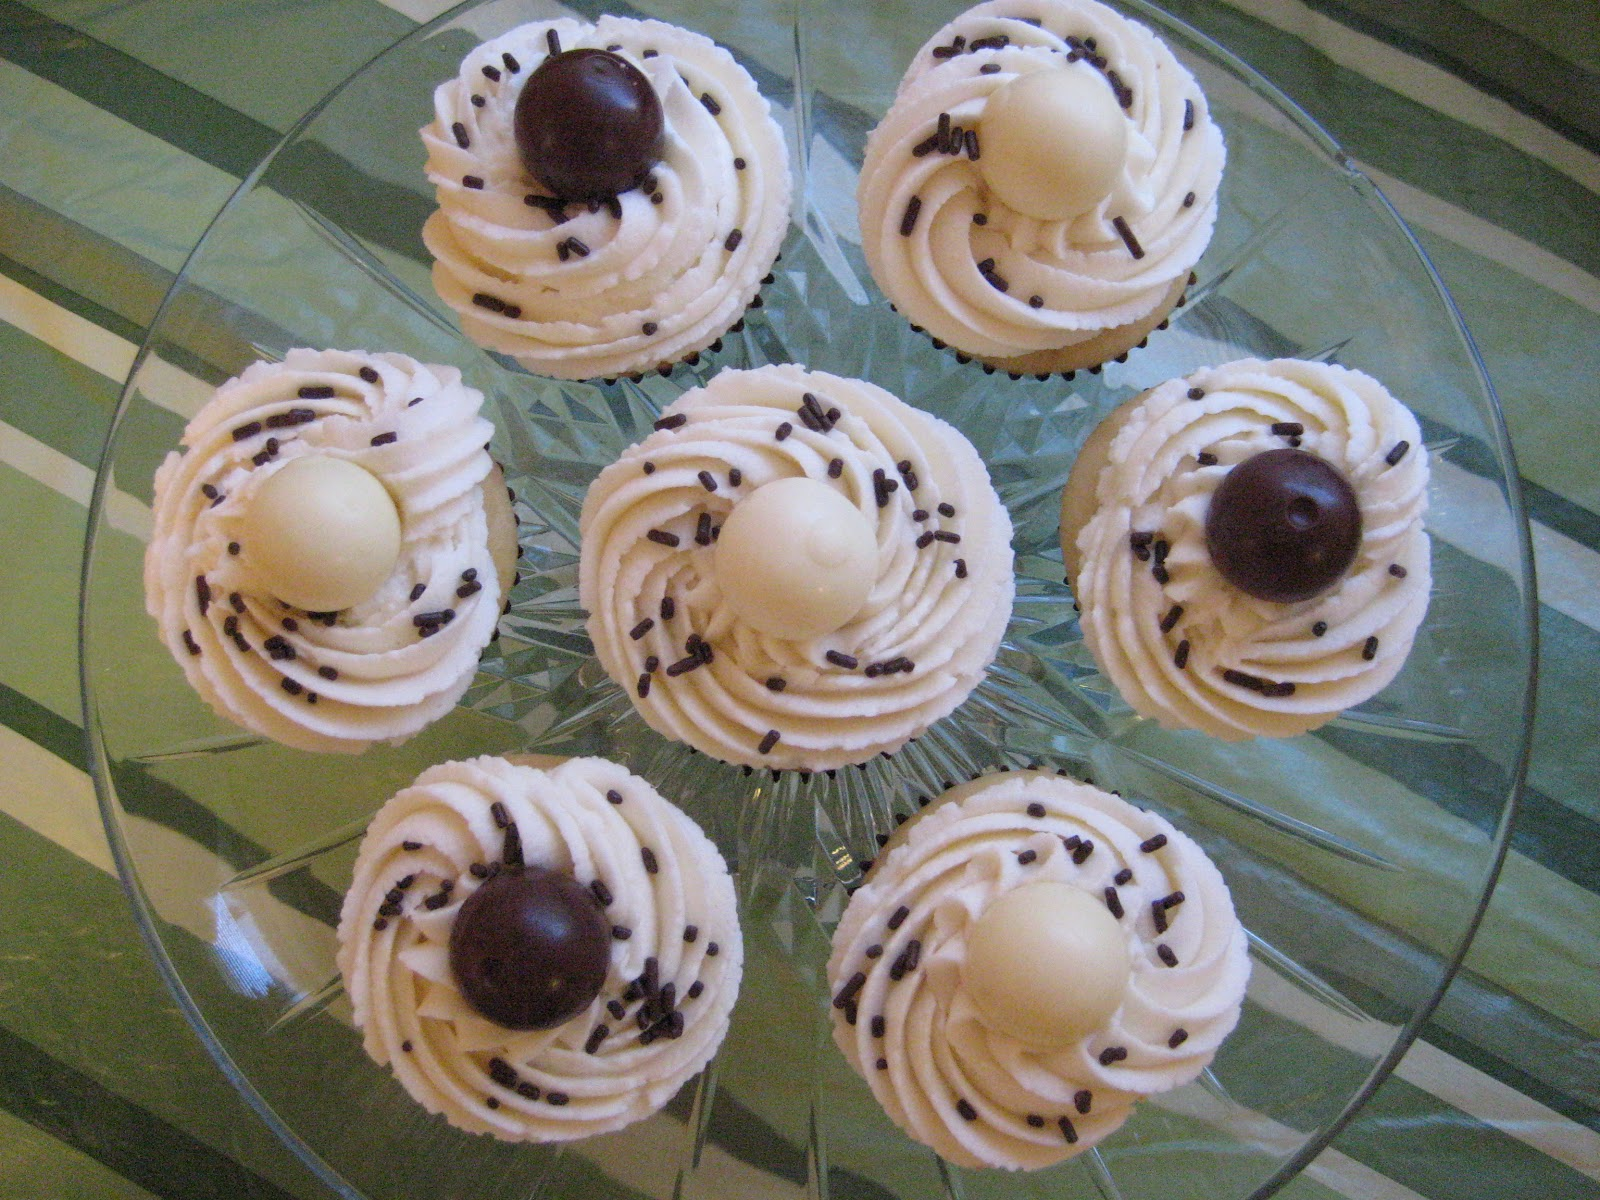 Cricket's Creations: Truffle-Filled Cupcakes